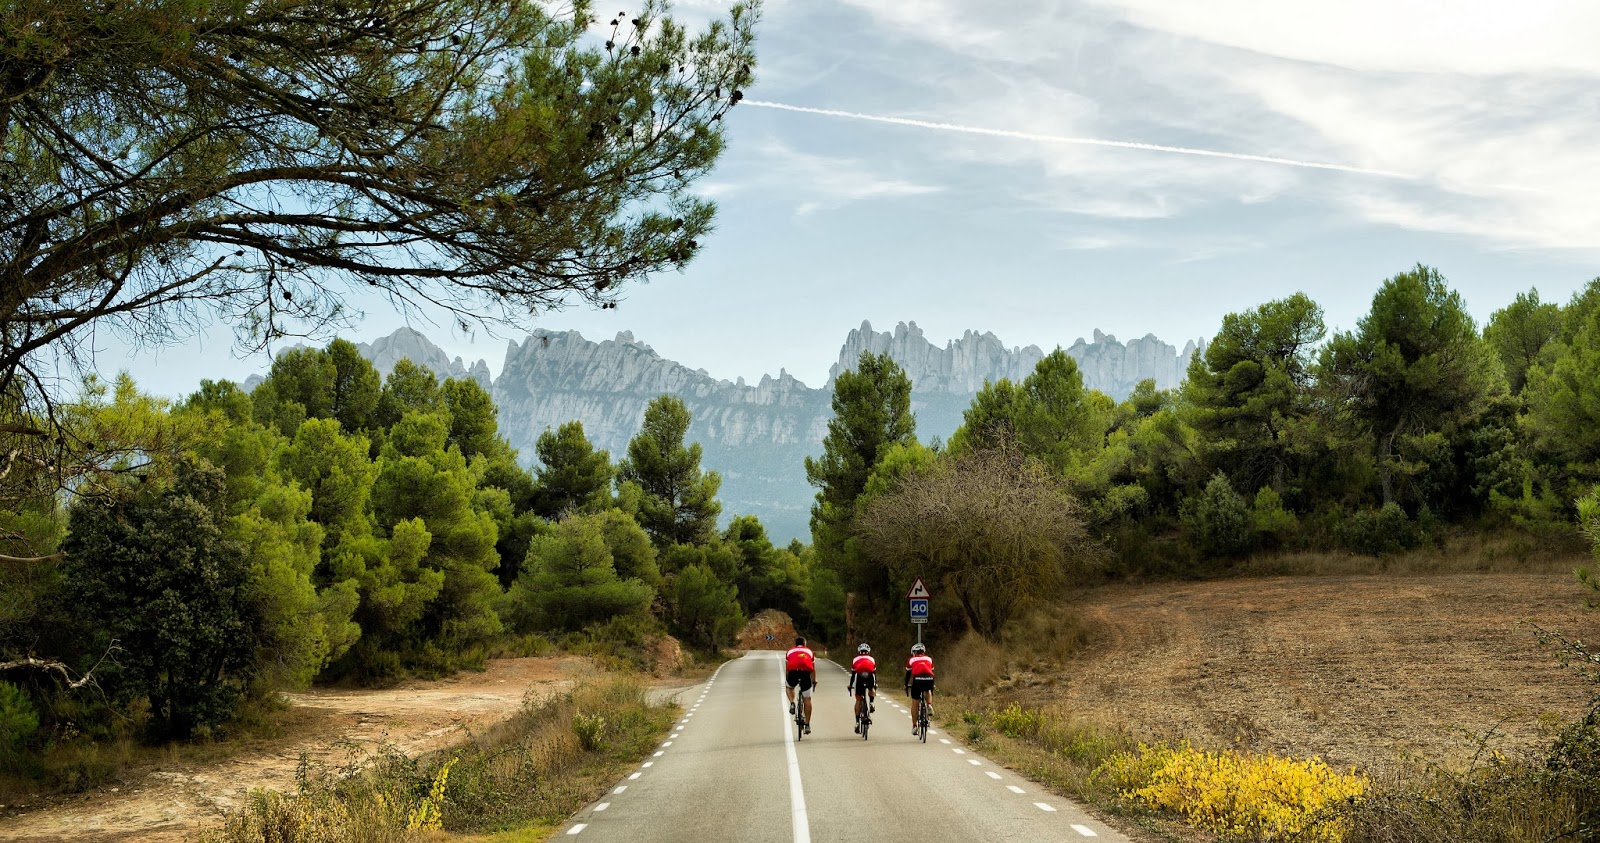 Montserrat: Visit the Monastery and E-Bike Experience in the Natural Park